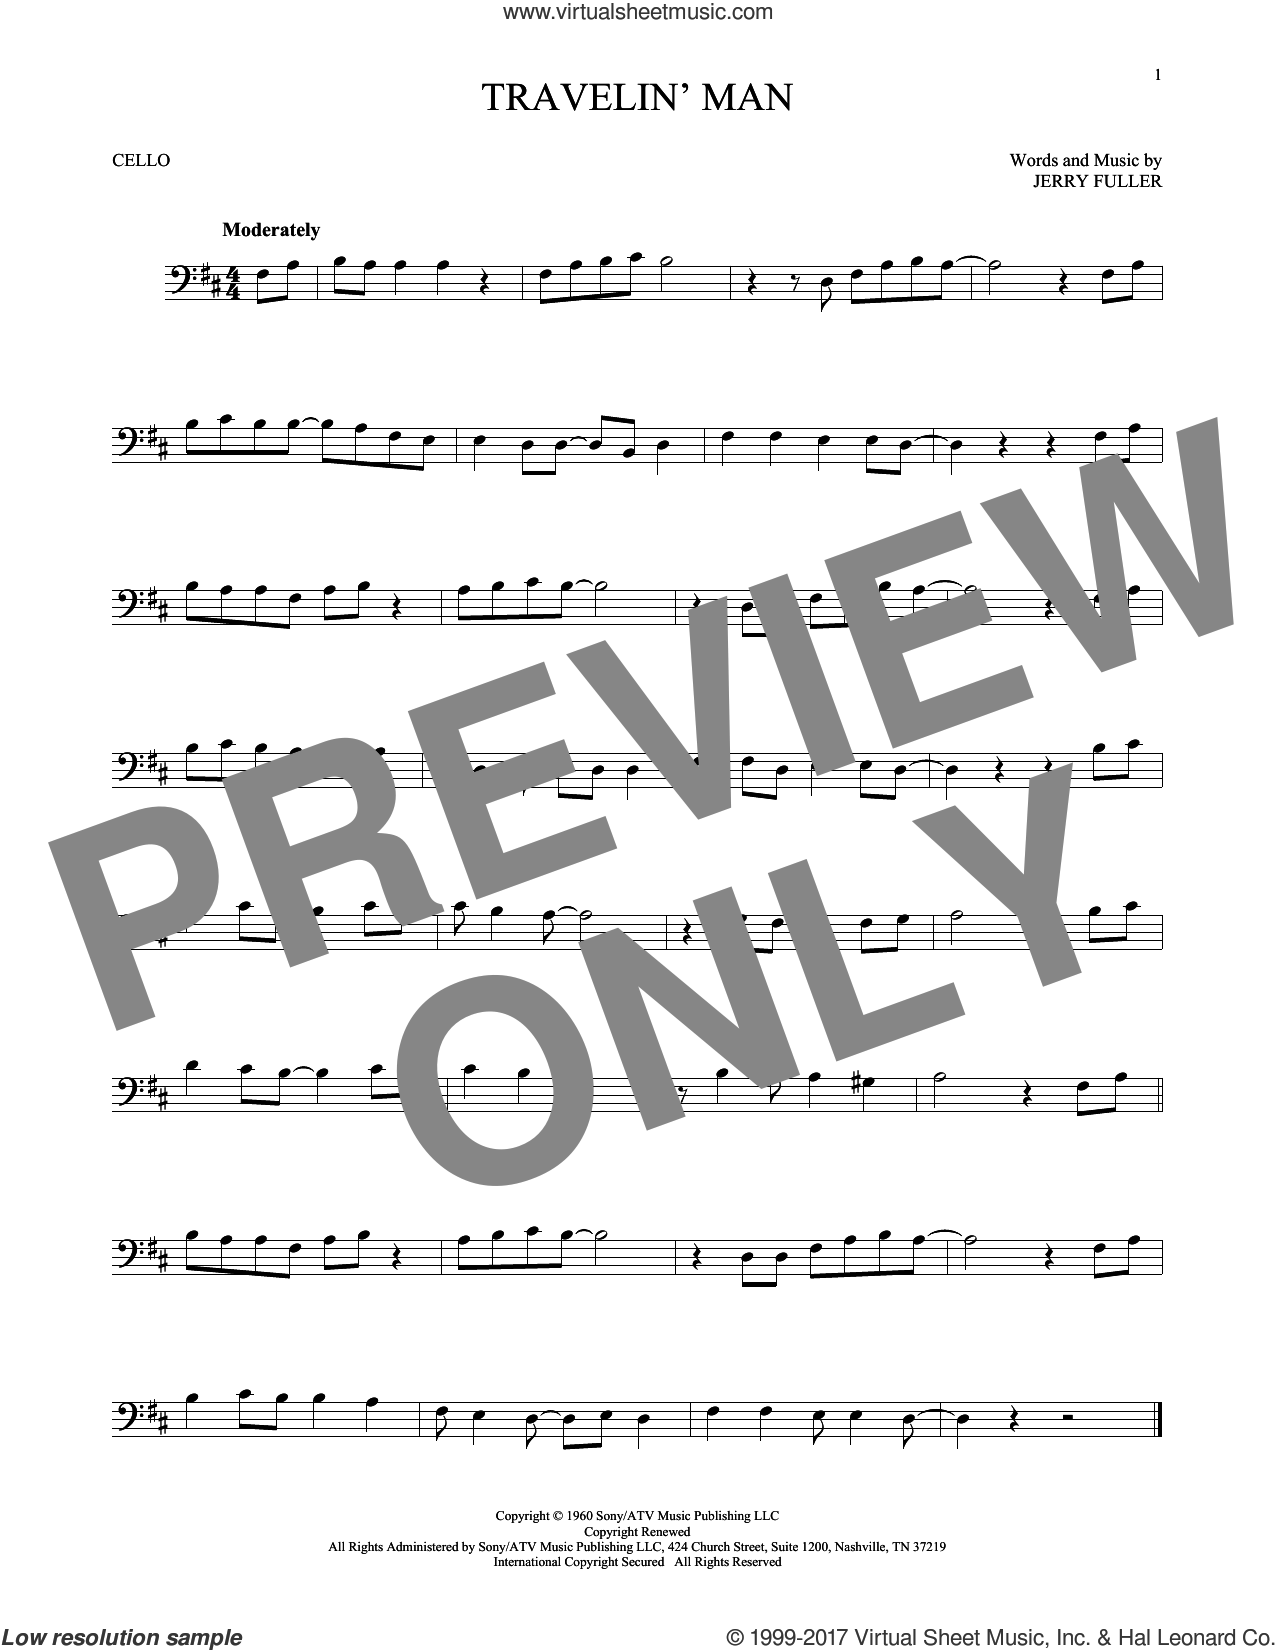 Travelin' Man sheet music for cello solo by Ricky Nelson and Jerry Fuller, intermediate skill level